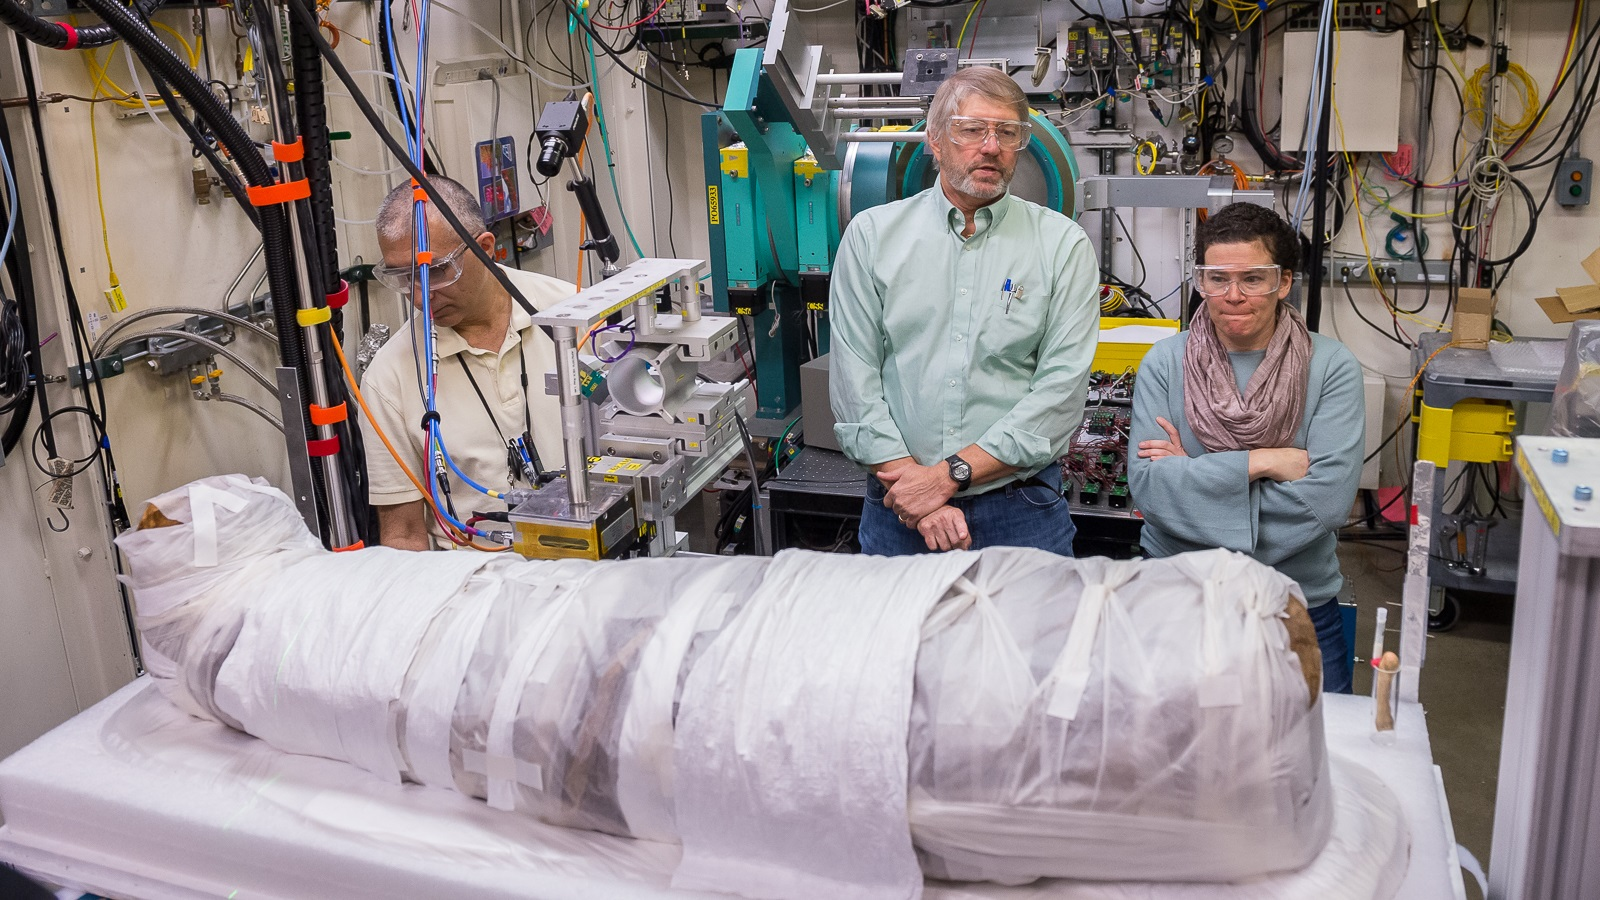 Stuart Stock, center, of Northwestern University, talks with Rachel Sabino, right, of the Art Institute of Chicago in 2017 while Argonne scientist Ali Mashayekhi, left, makes adjustments to the apparatus holding a 1,900-year-old Egyptian mummy. (Image by Mark Lopez / Argonne National Laboratory.)